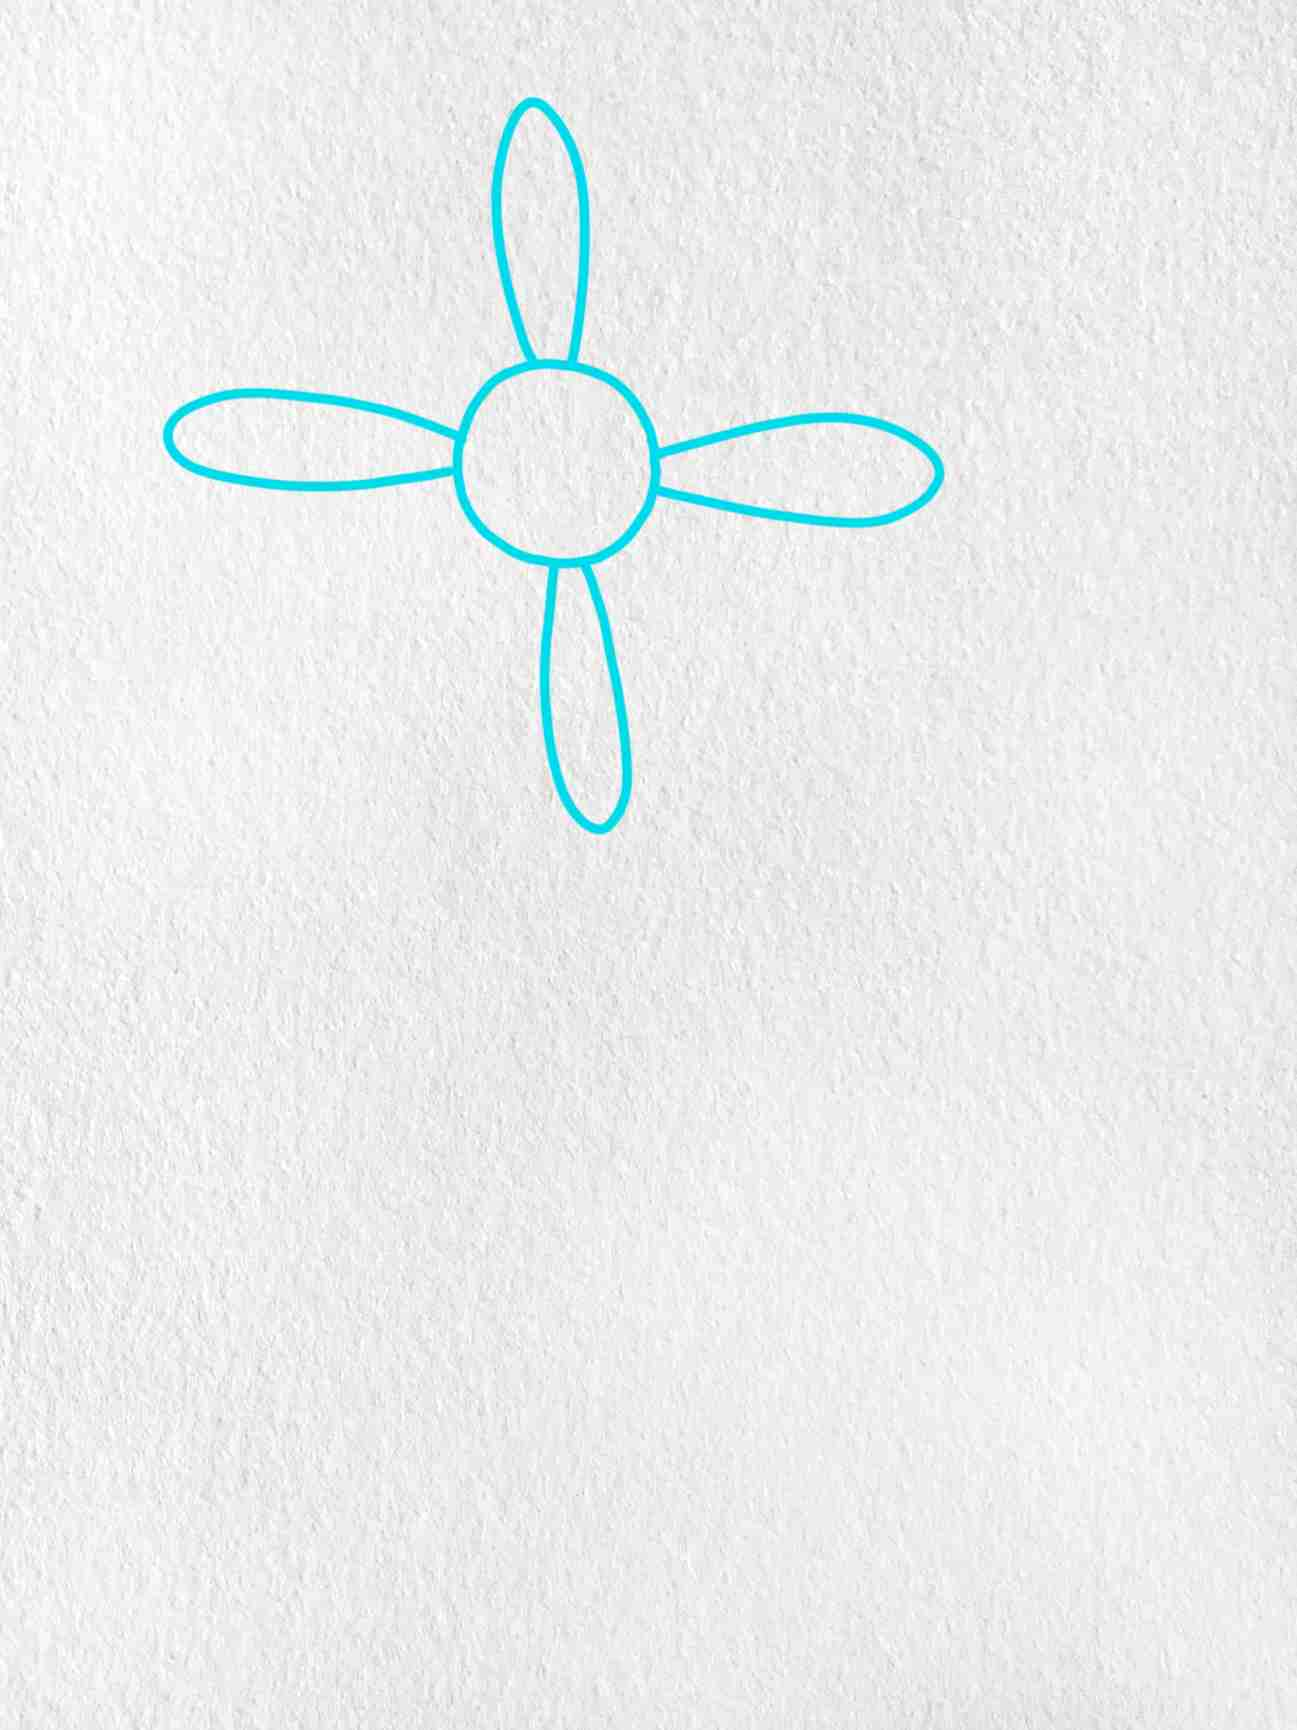 How To Draw A Daisy Flower: Step 1